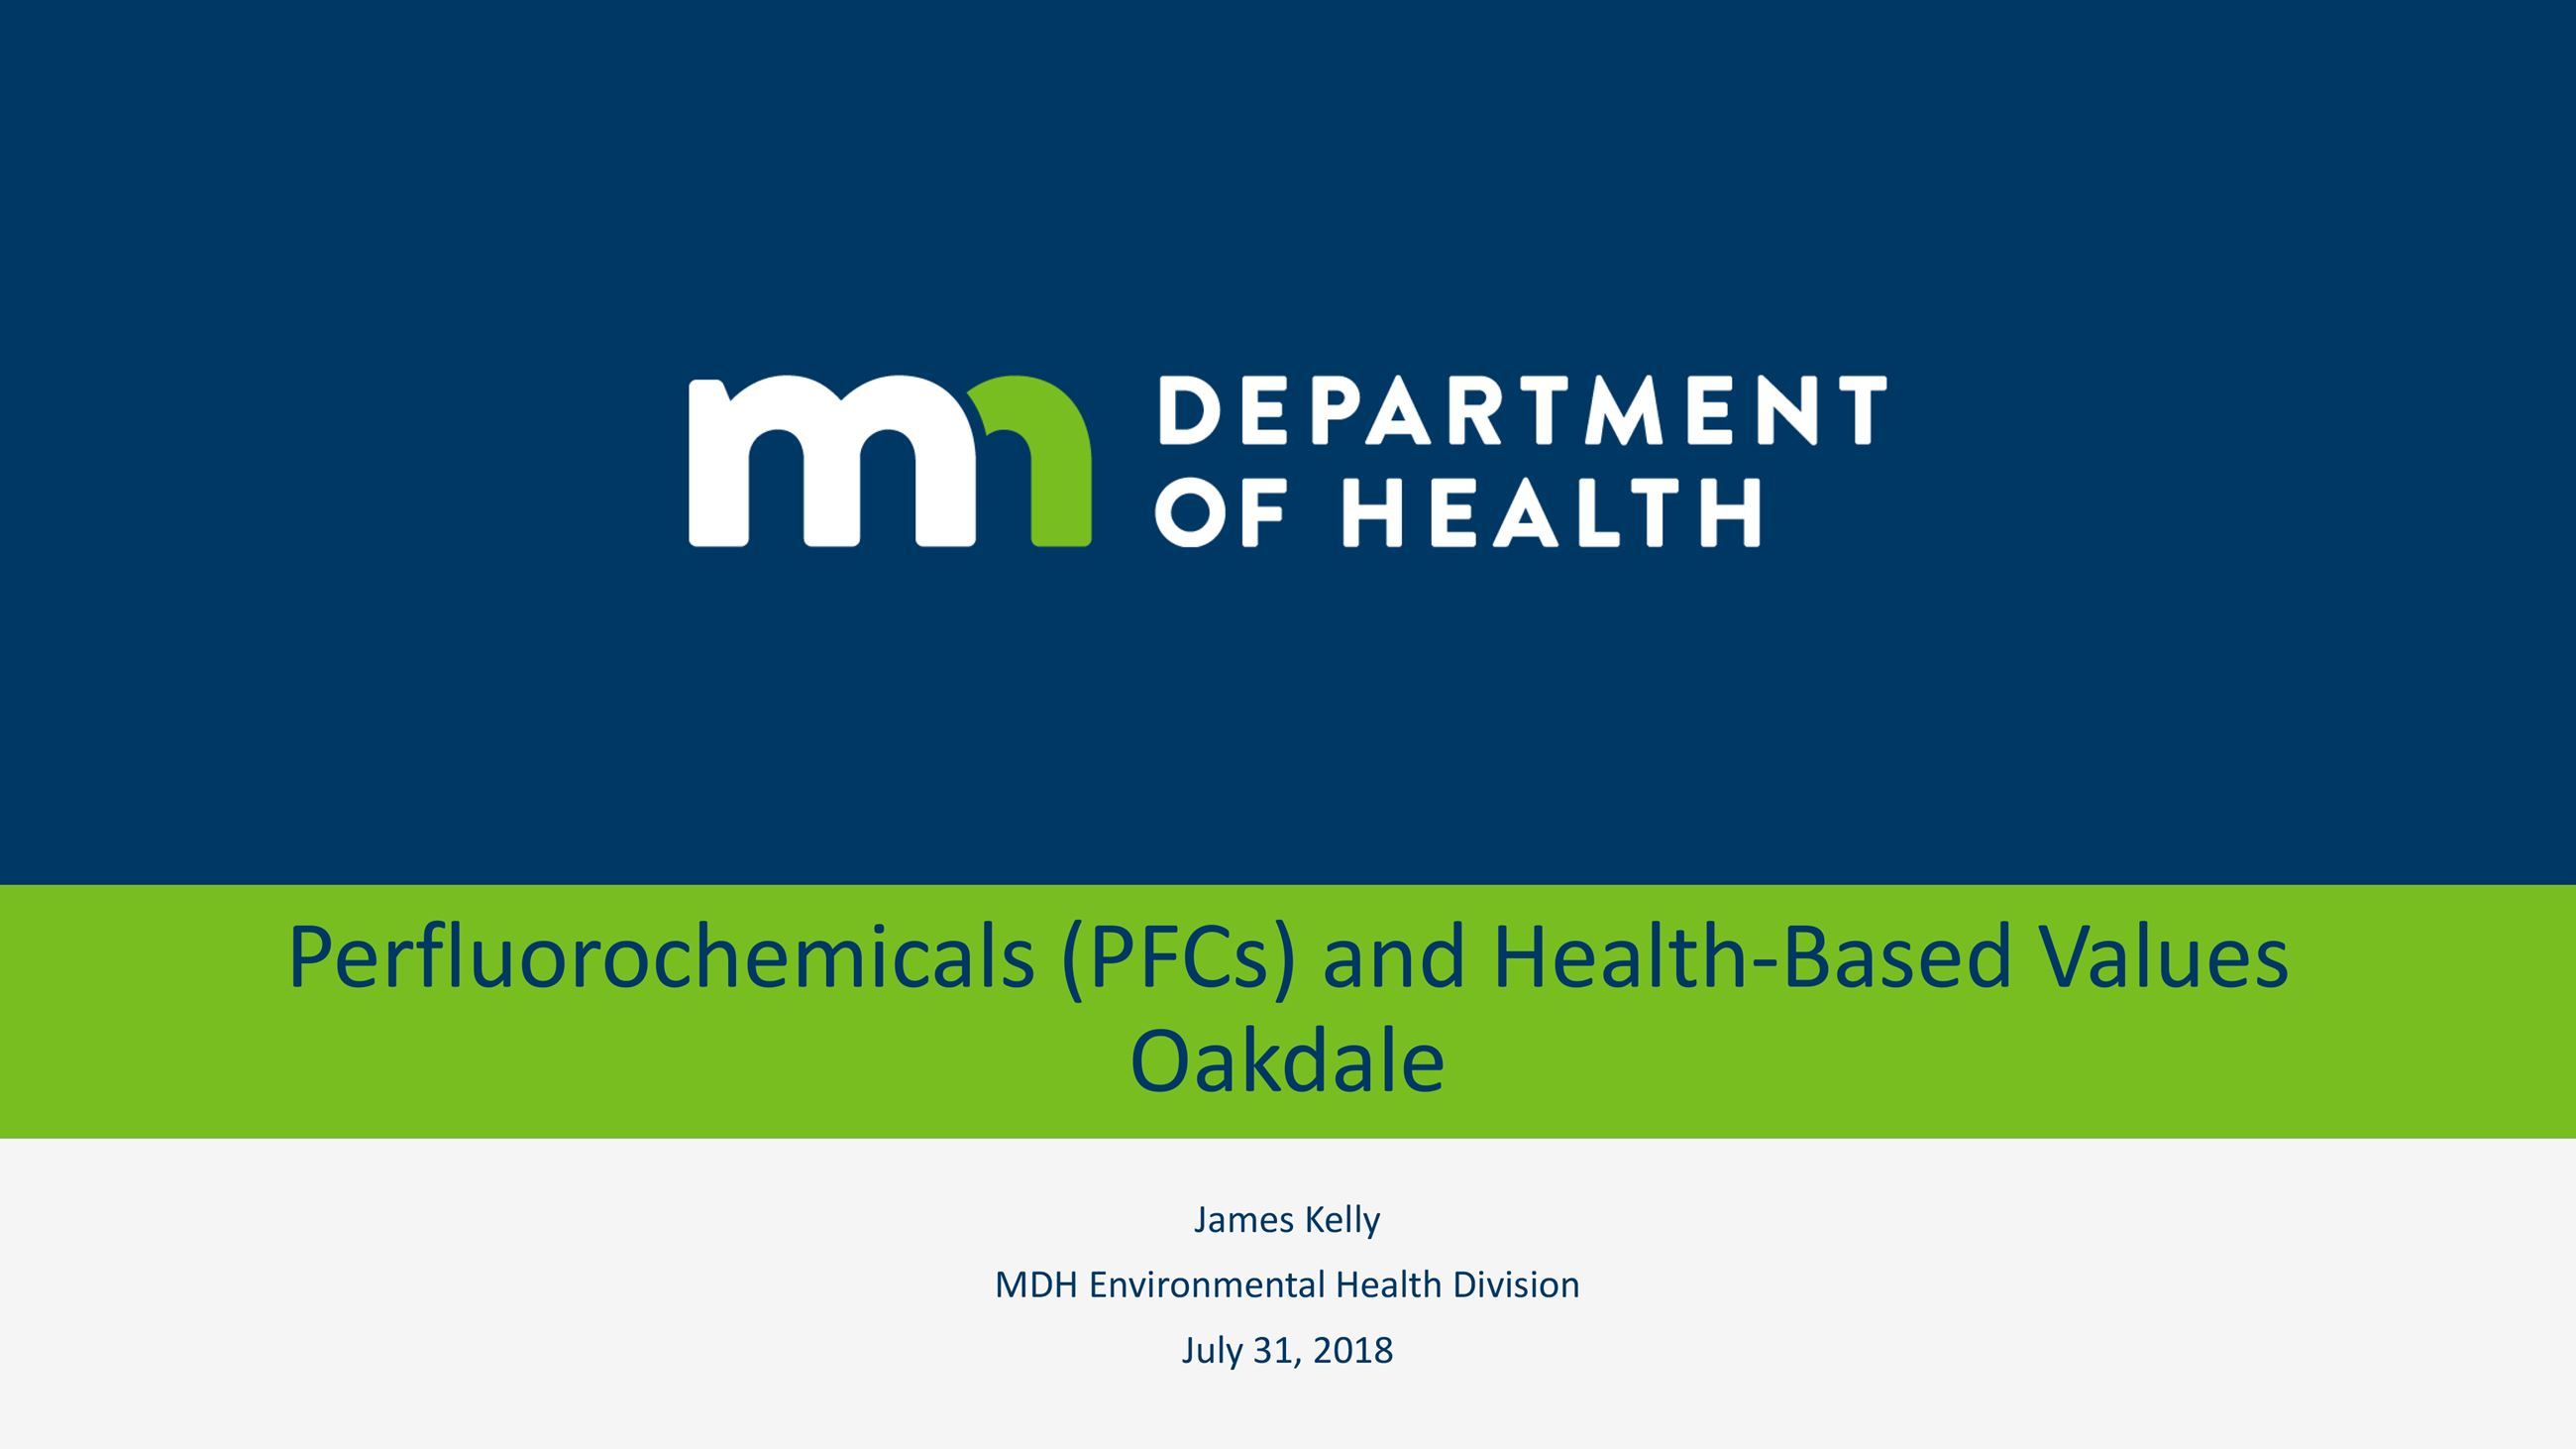 Minnesota Department of Health presentation